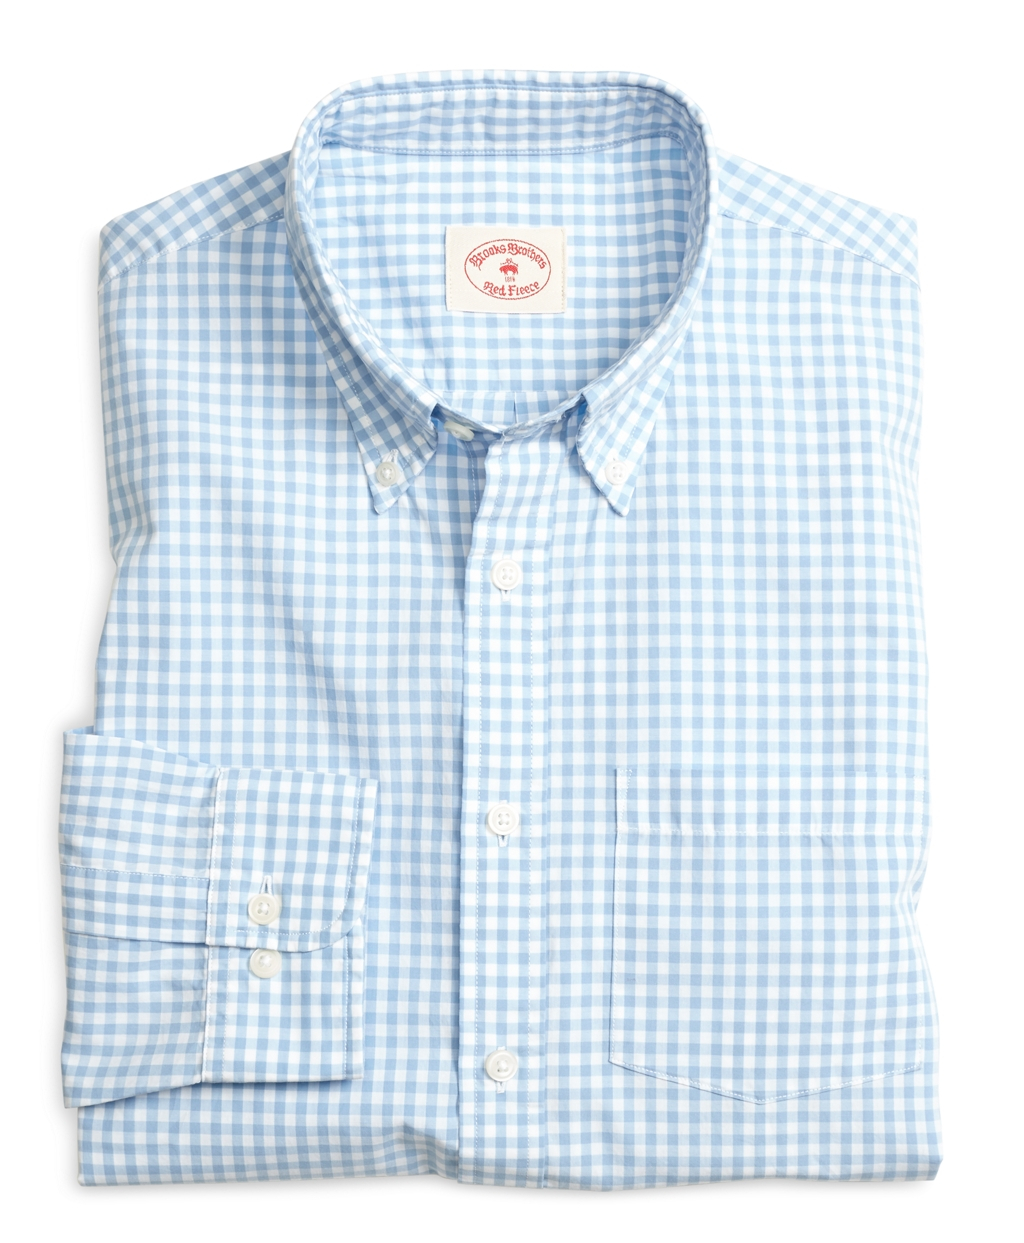 Brooks brothers gingham sport shirt in blue for men lyst for Brooks brothers sports shirts